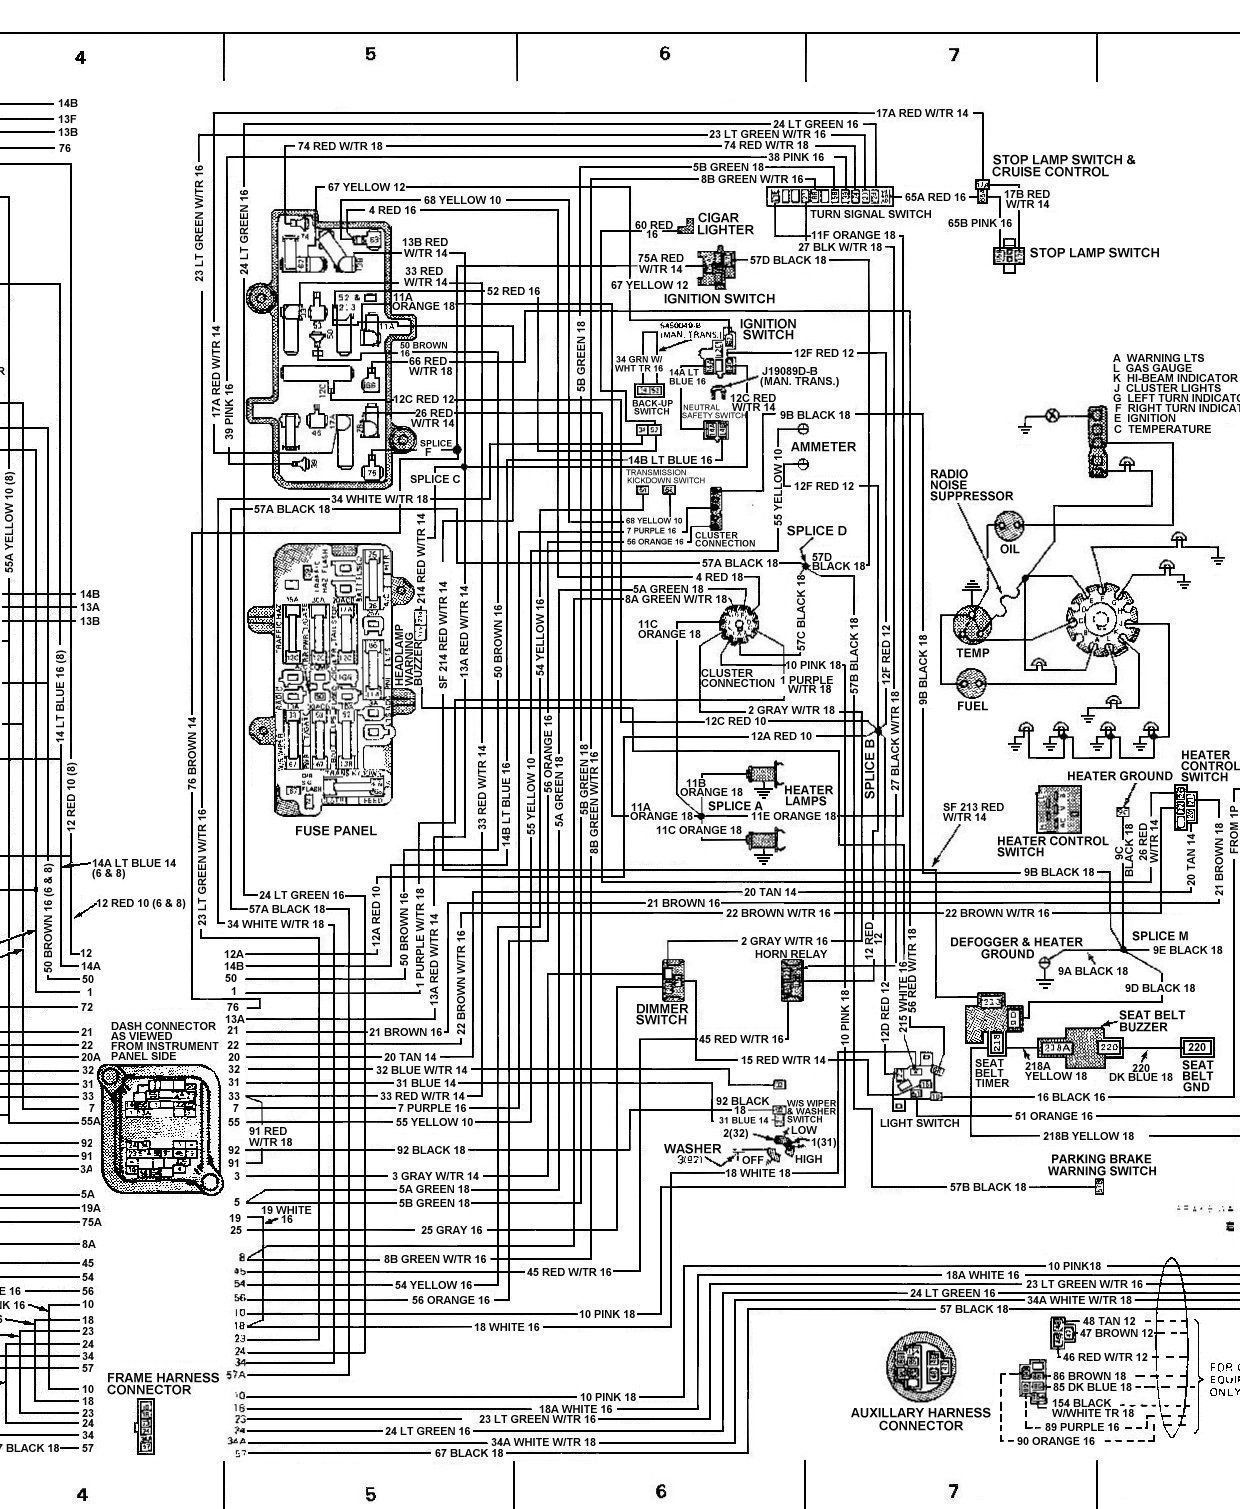 232951 2006 vw jetta wiring diagram vw jetta diesel wiring diagram \u2022 free wiring schematics for 2006 volkswagen jetta at n-0.co